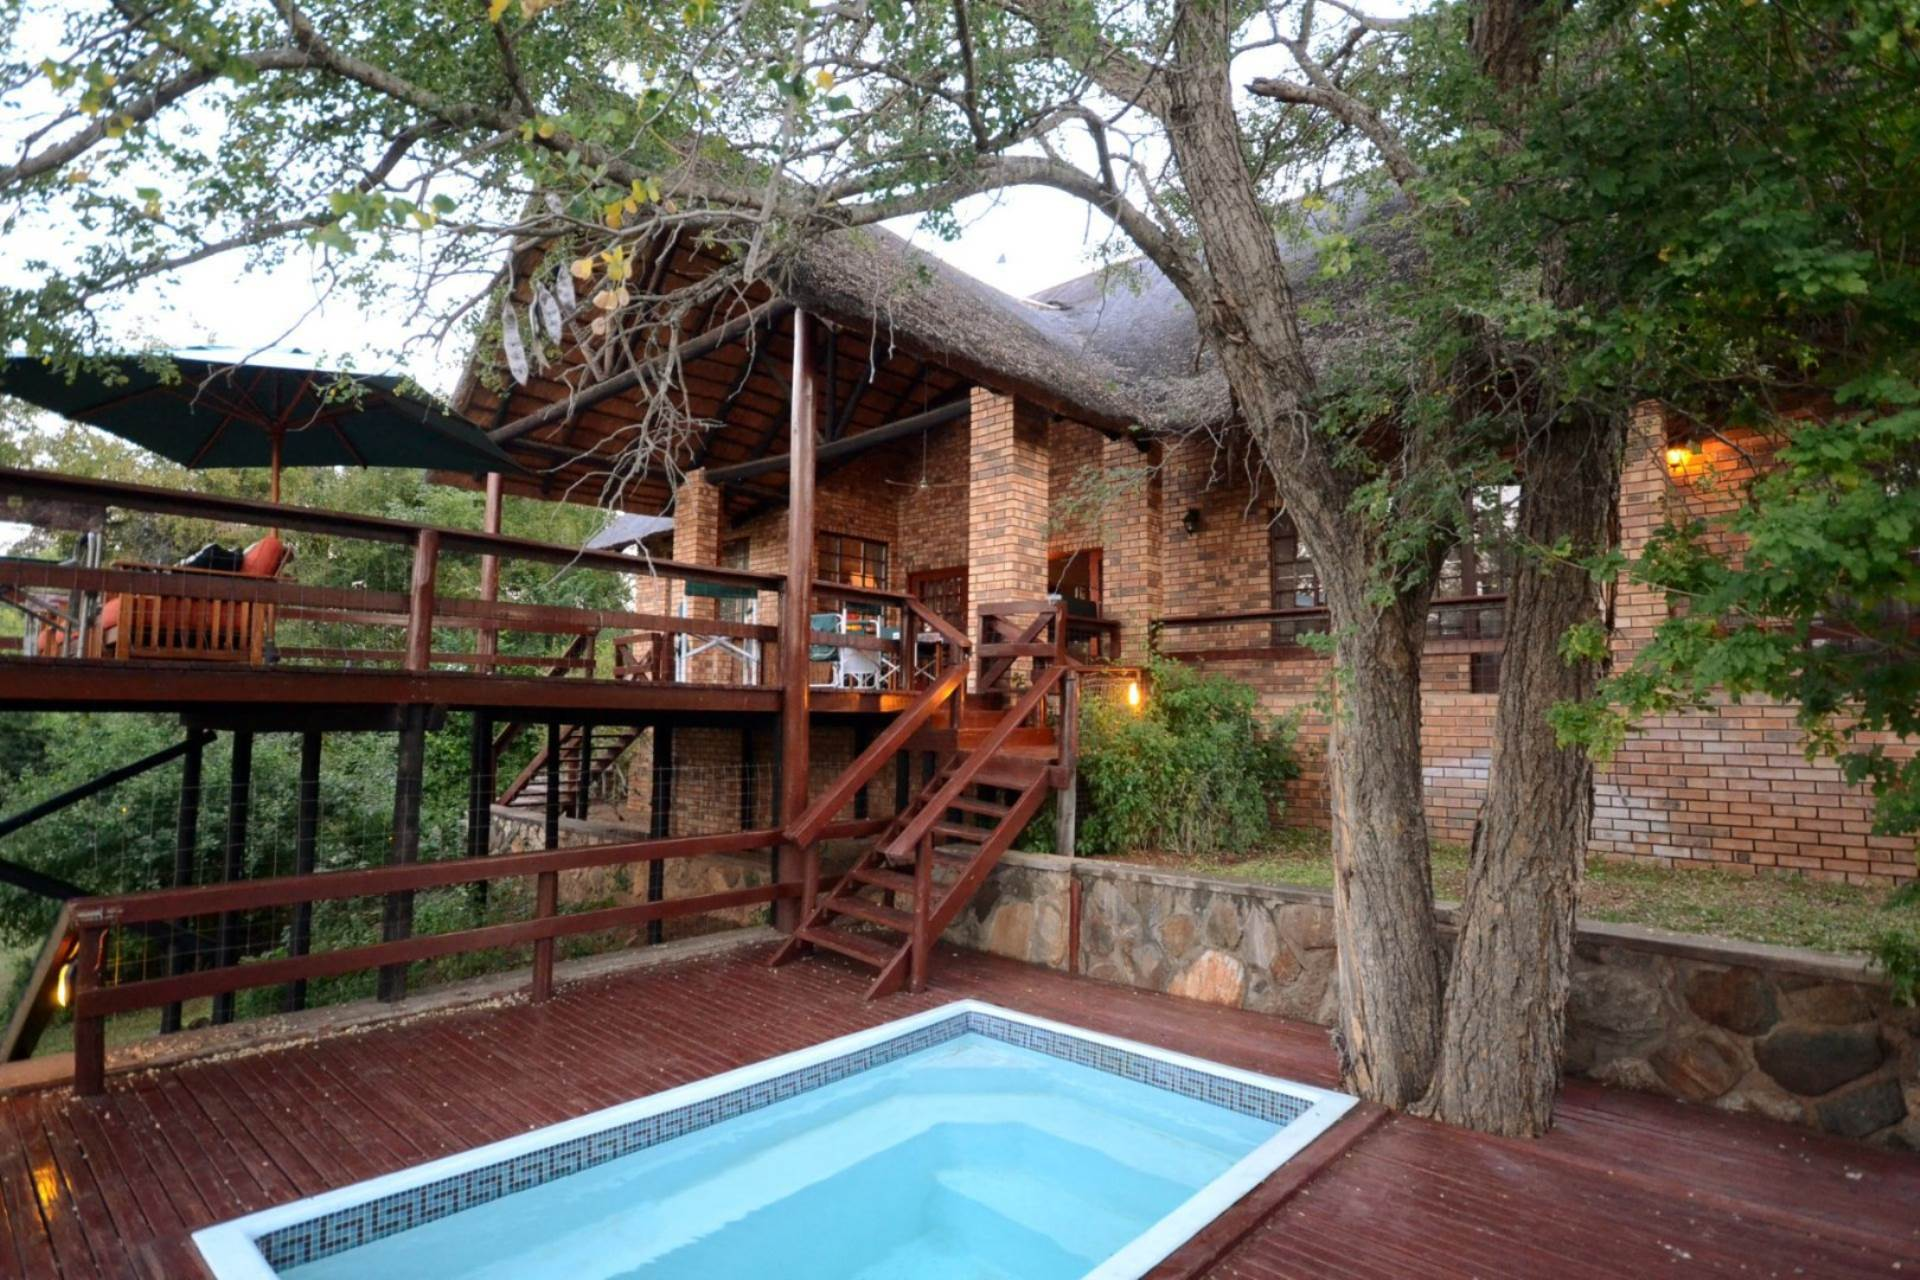 4 BedroomHouse For Sale In Grietjie Game Reserve